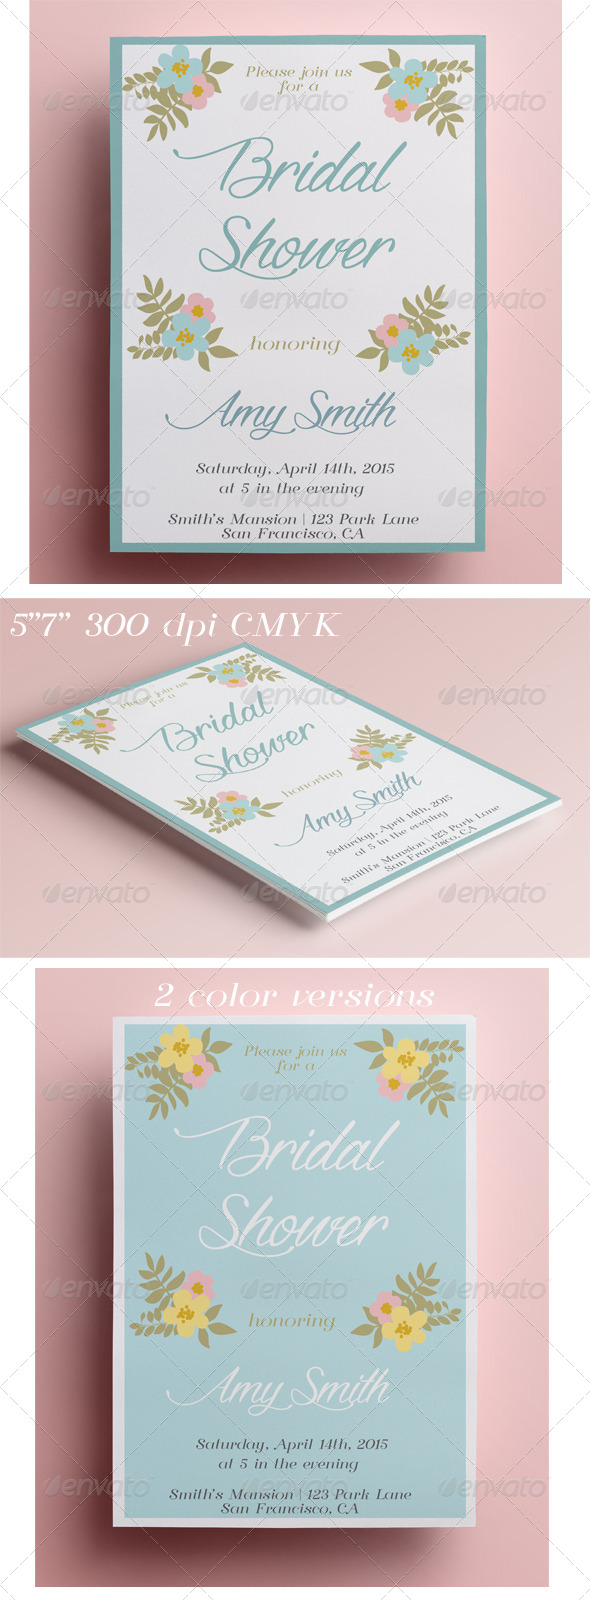 GraphicRiver Floral Bridal Shower Invitation 8545928